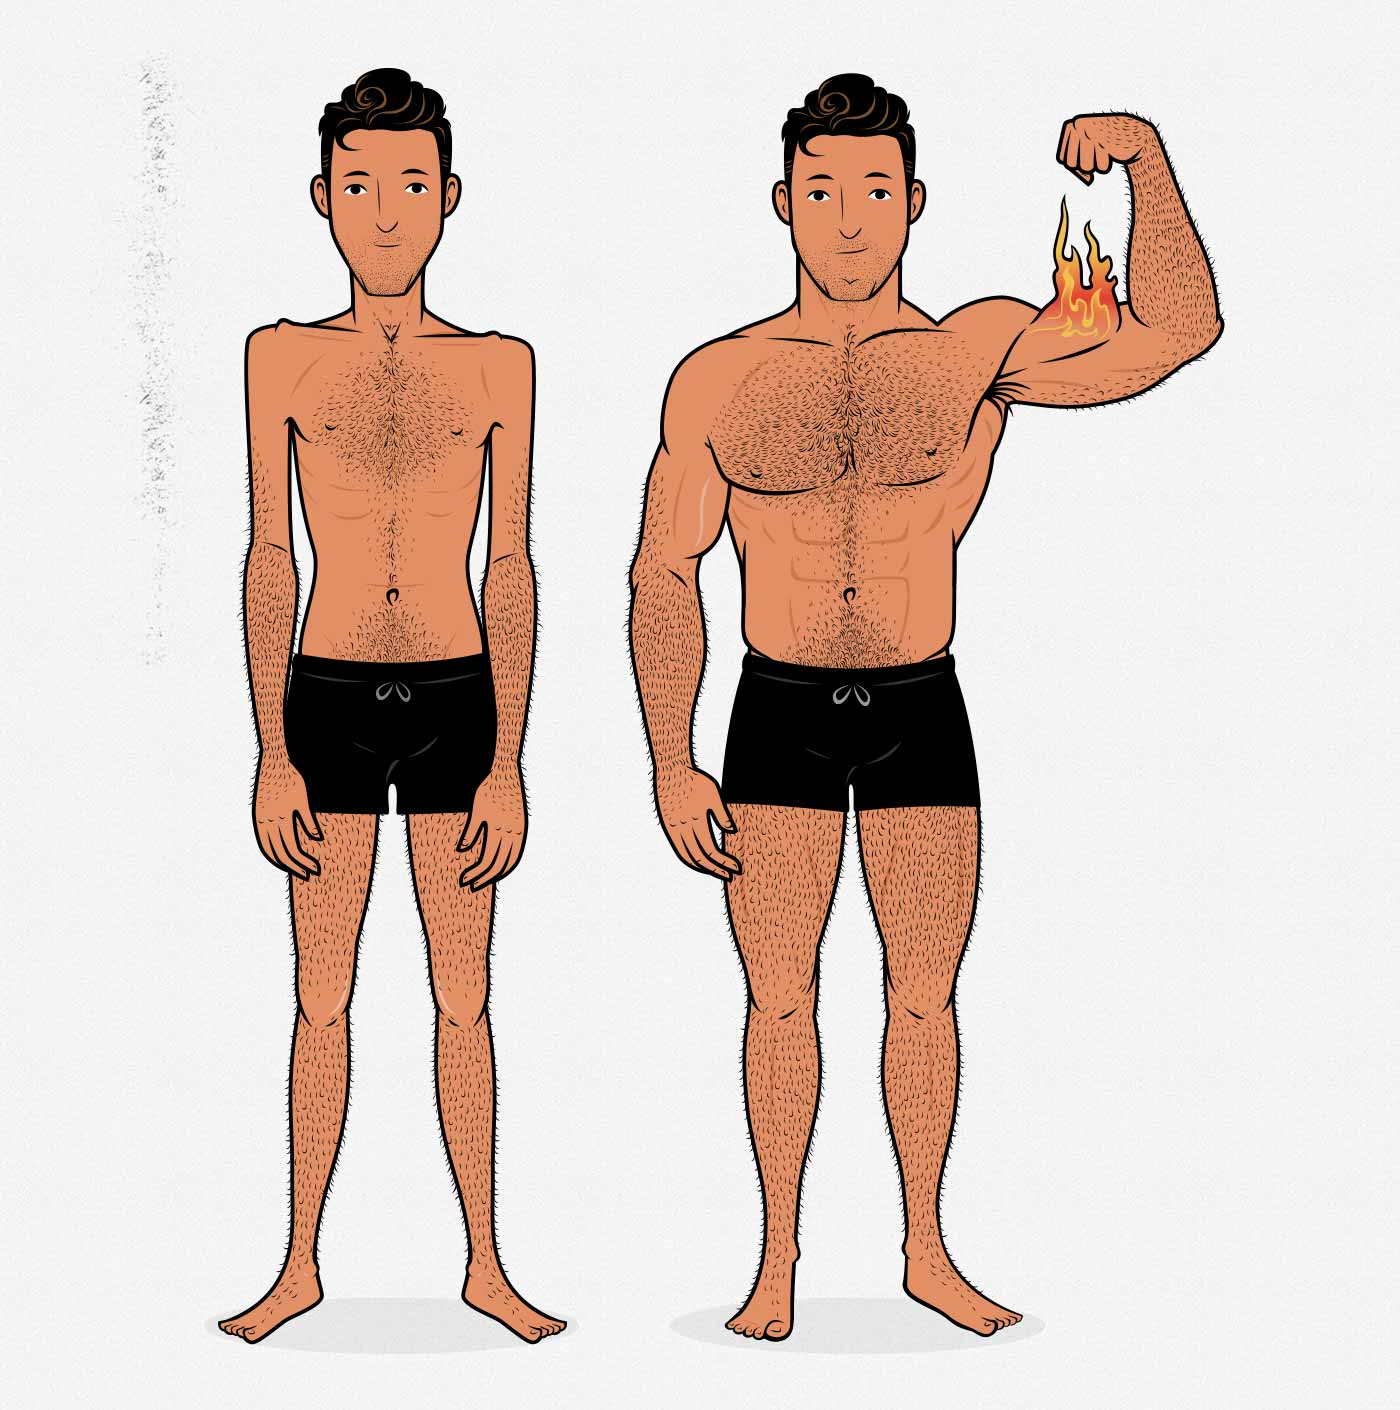 Illustration of a skinny guy building muscle and becoming muscular (before/after).